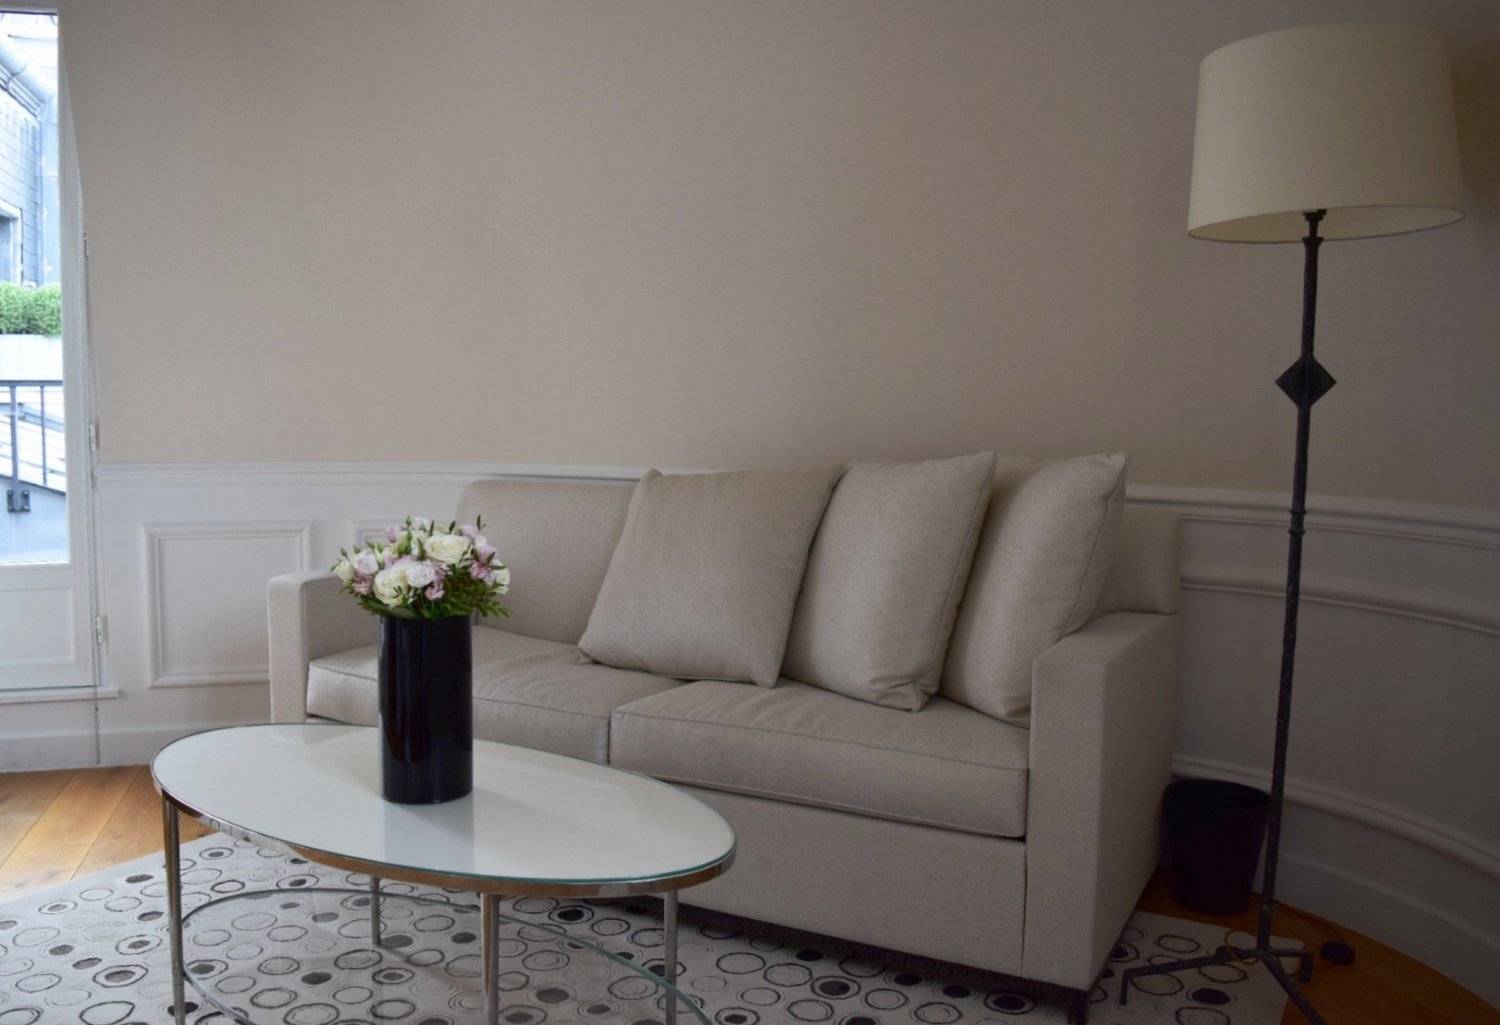 Grand hotel du palais royal paris black tomato - I Stayed In The Palais Royal Suite Which Took My Breath Away As Soon As The Door Opened When You Step Inside You Are Greeted By A Plush Chaise Lounge And